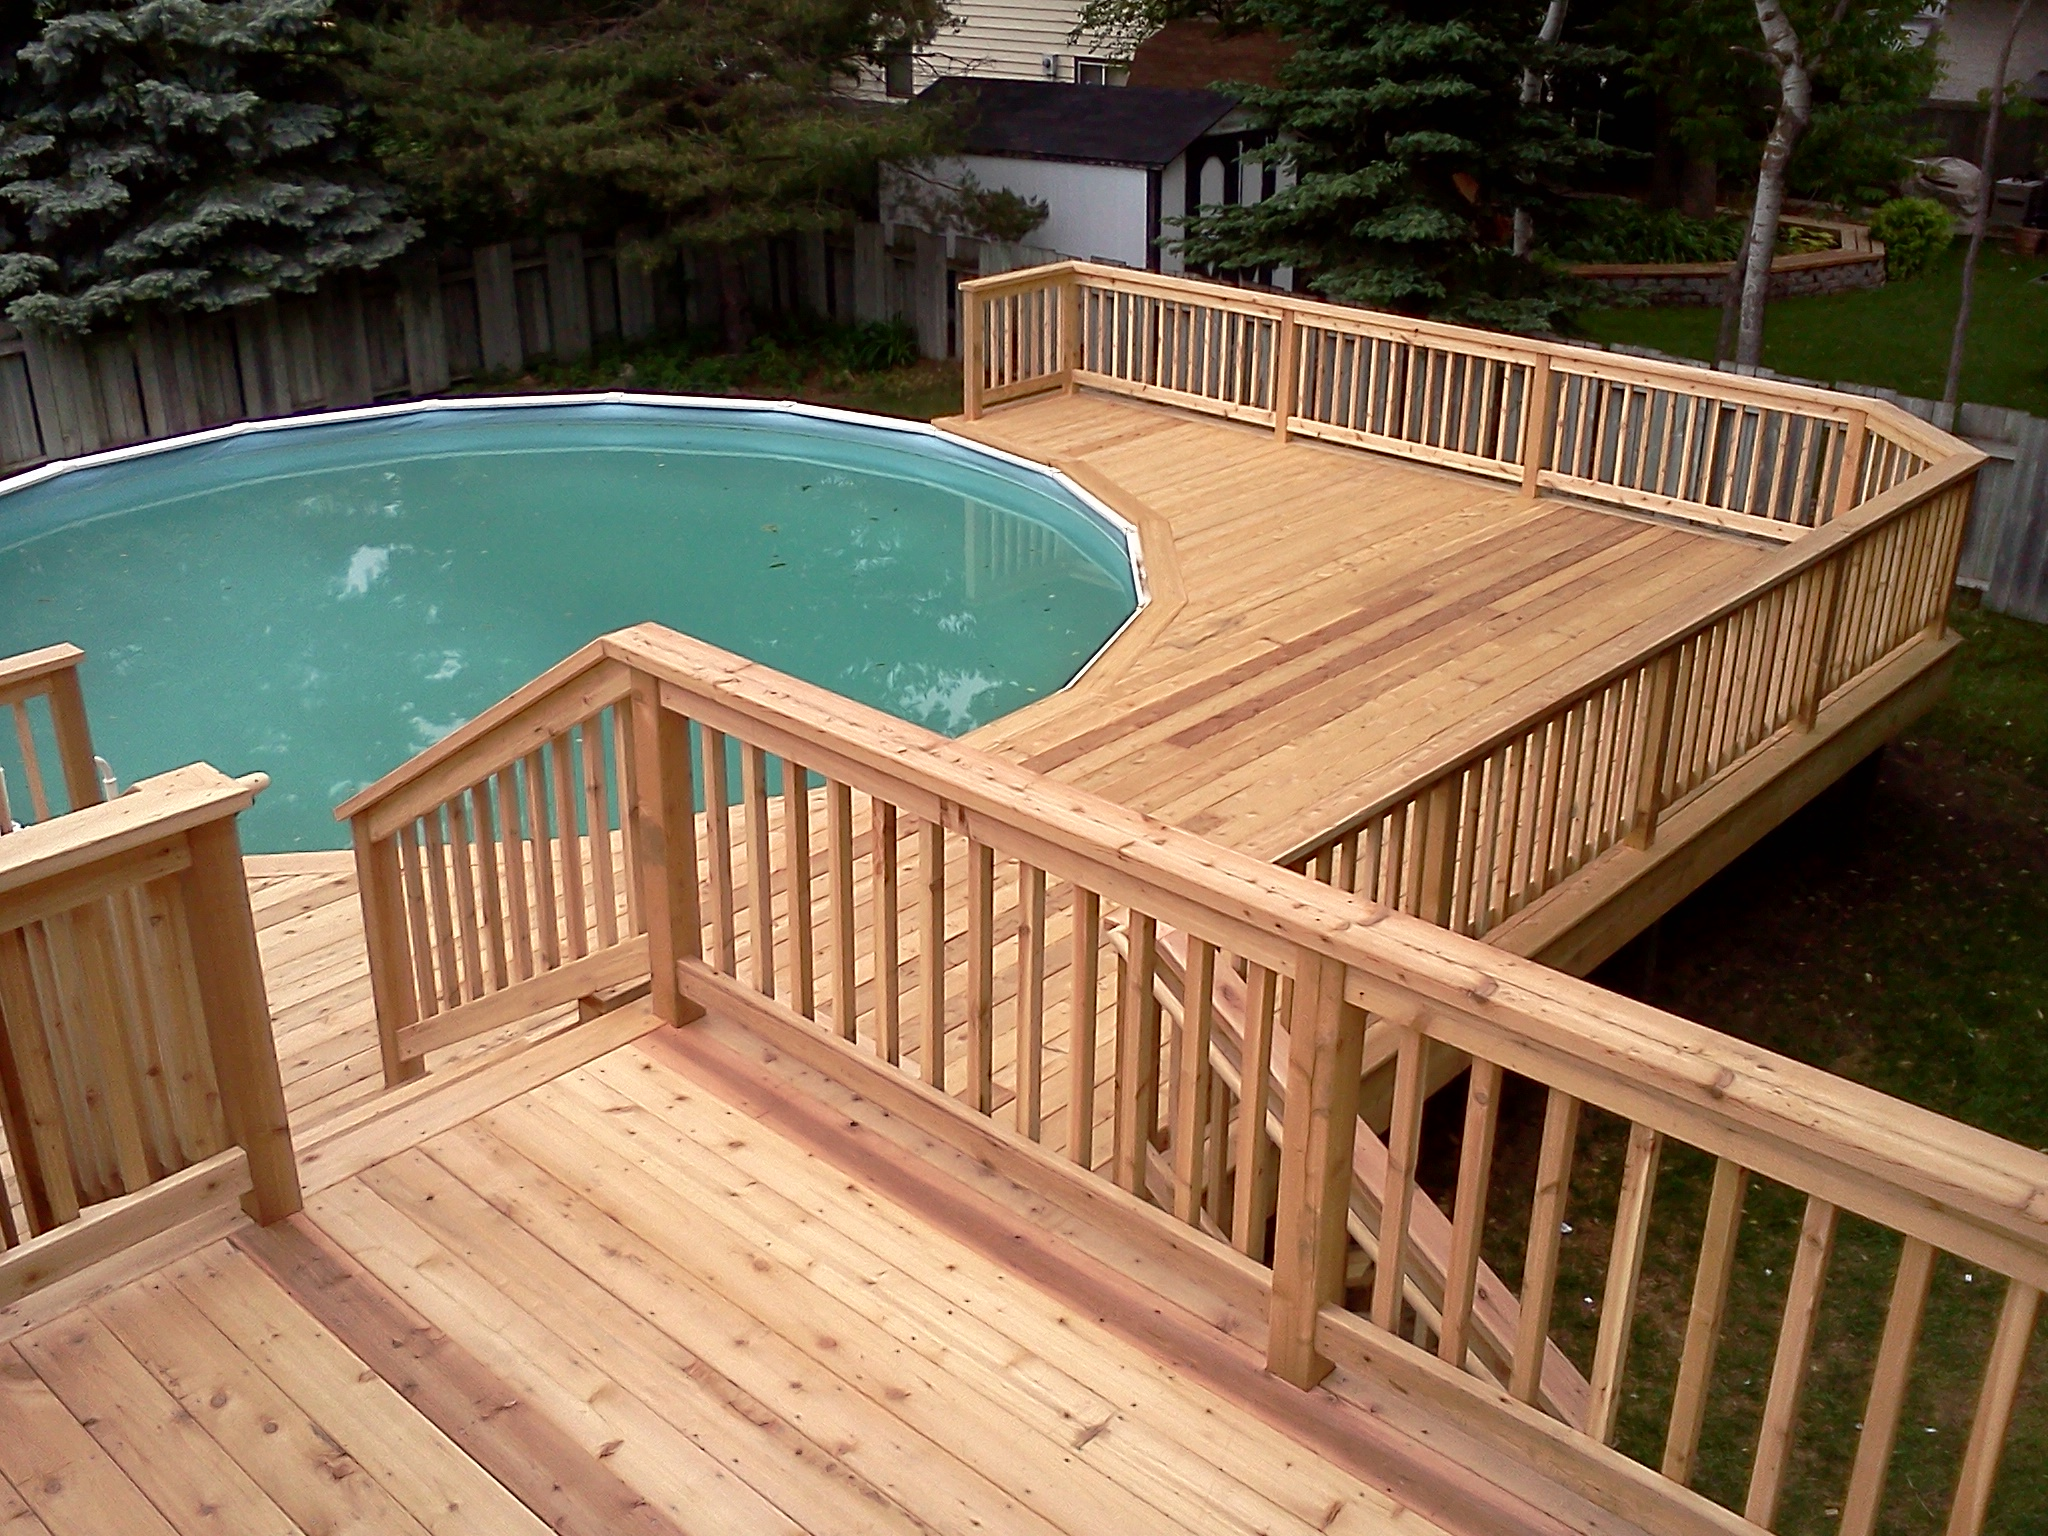 Pool deck wood example fairfax county virginia pool for Multi level deck above ground pool